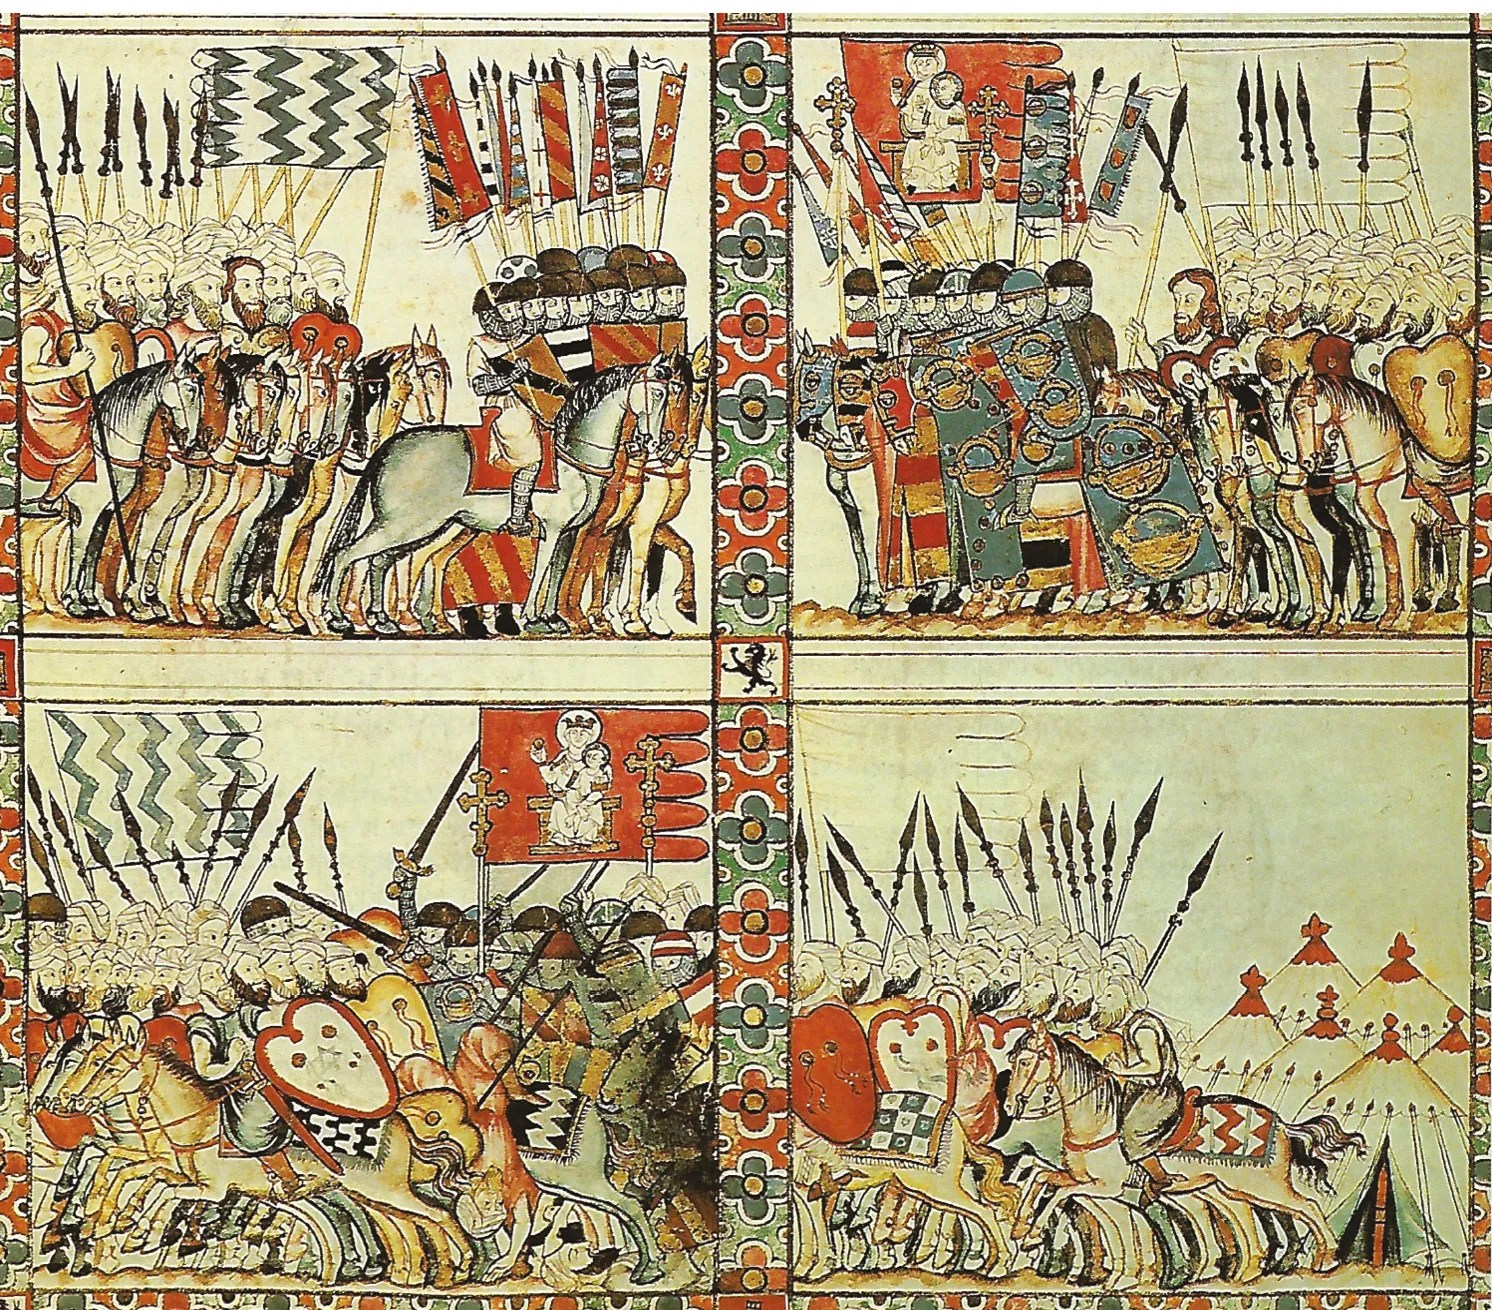 below This 11th-century illustration of fighting between Christians and Moors in Spain appears to depict a battle in which armoured knights were surrounded by more mobile light cavalry as seems to have happened at the Battle of Cerami.